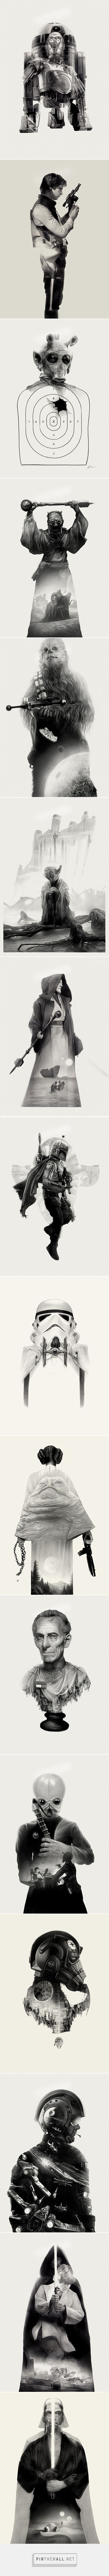 Amazing Star Wars Illustrations by Greg Ruth